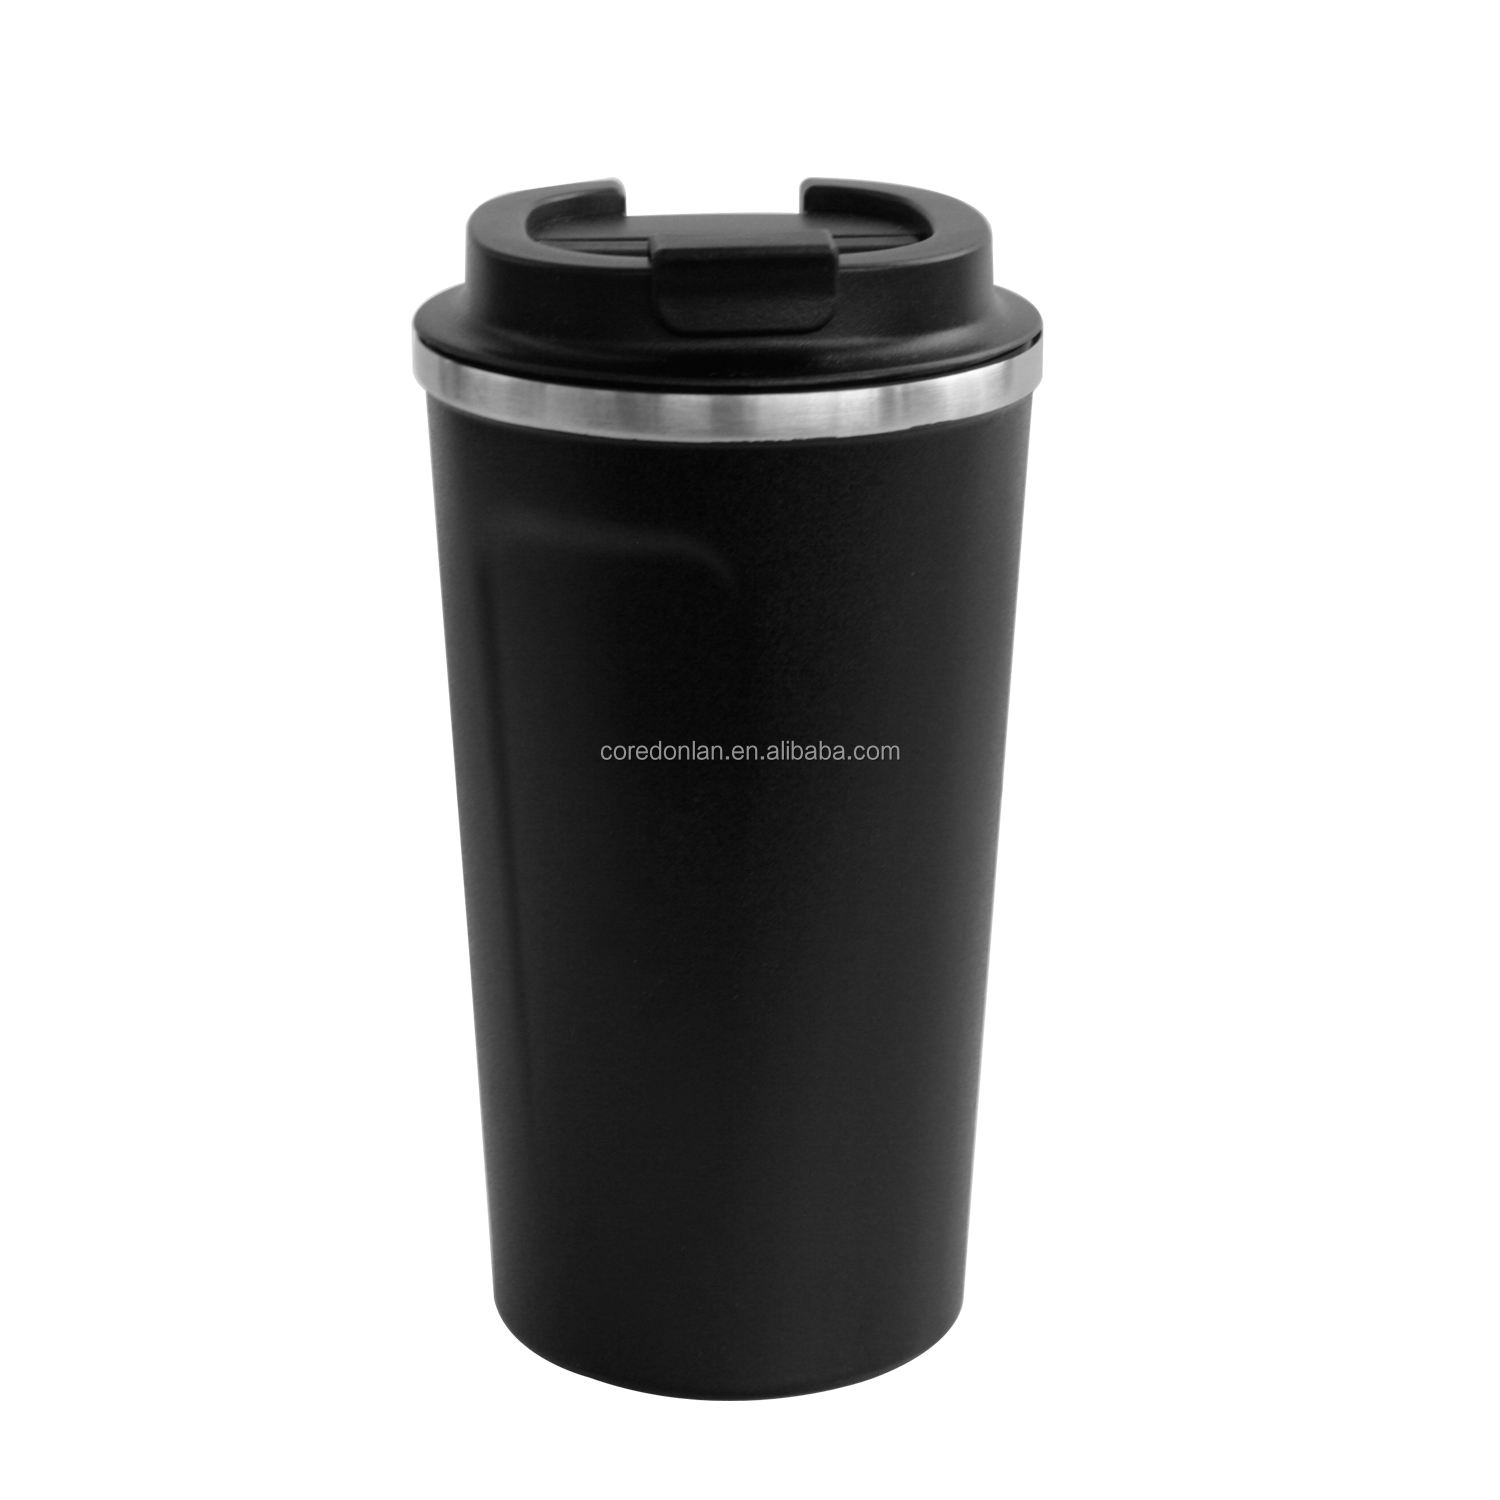 500ml Black 304 stainless steel thermos cup